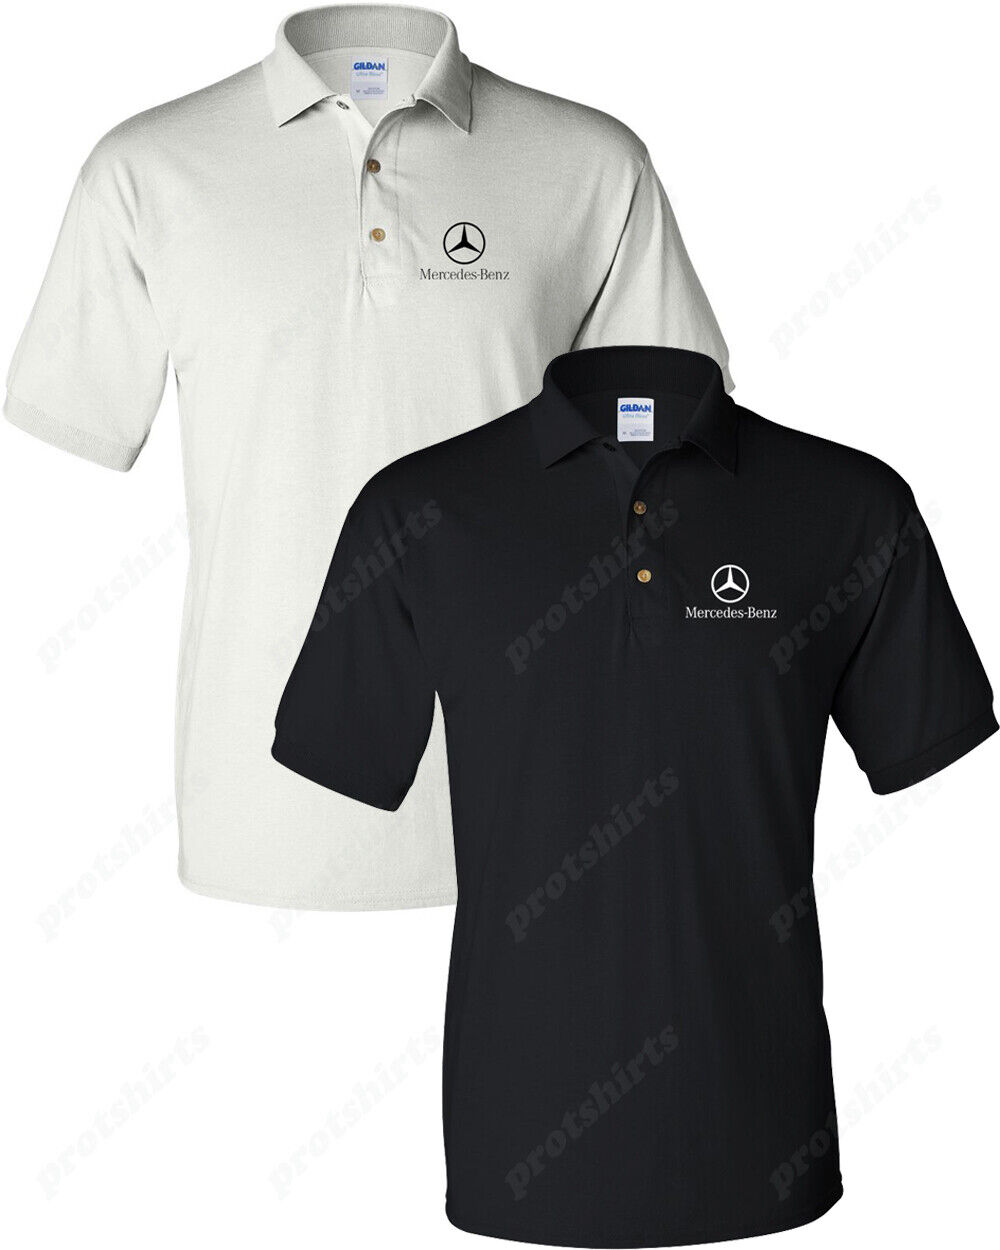 Mercedes Benz Logo Shirt Mercedes Benz Men's Polo Shirt